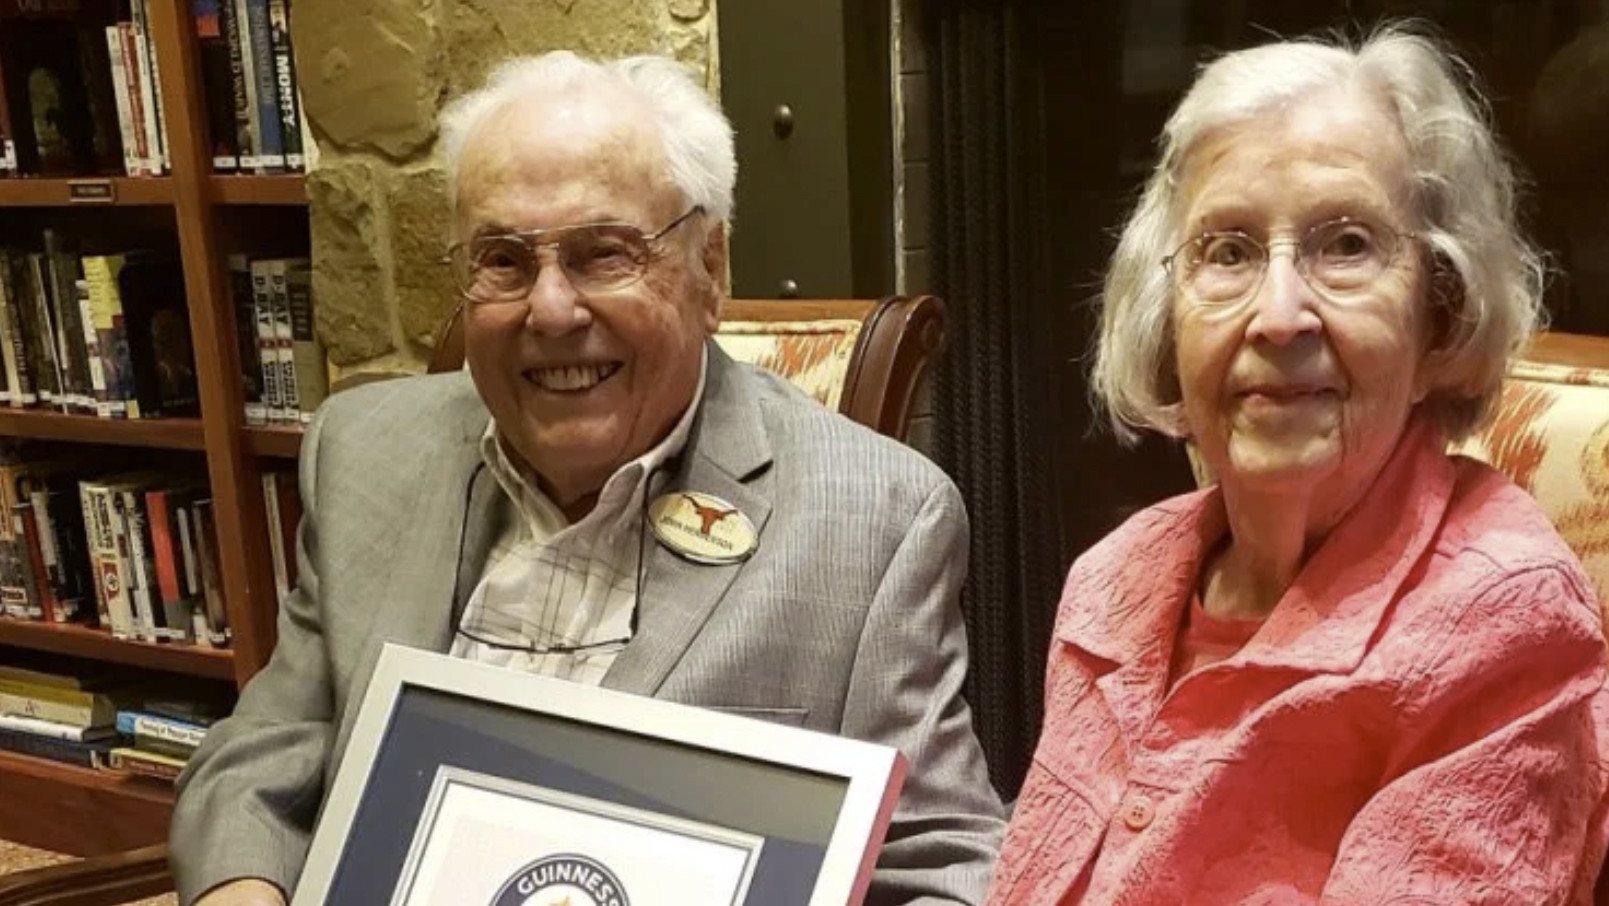 Texas husband and wife, at 106 and 105 years young, officially world's oldest couple